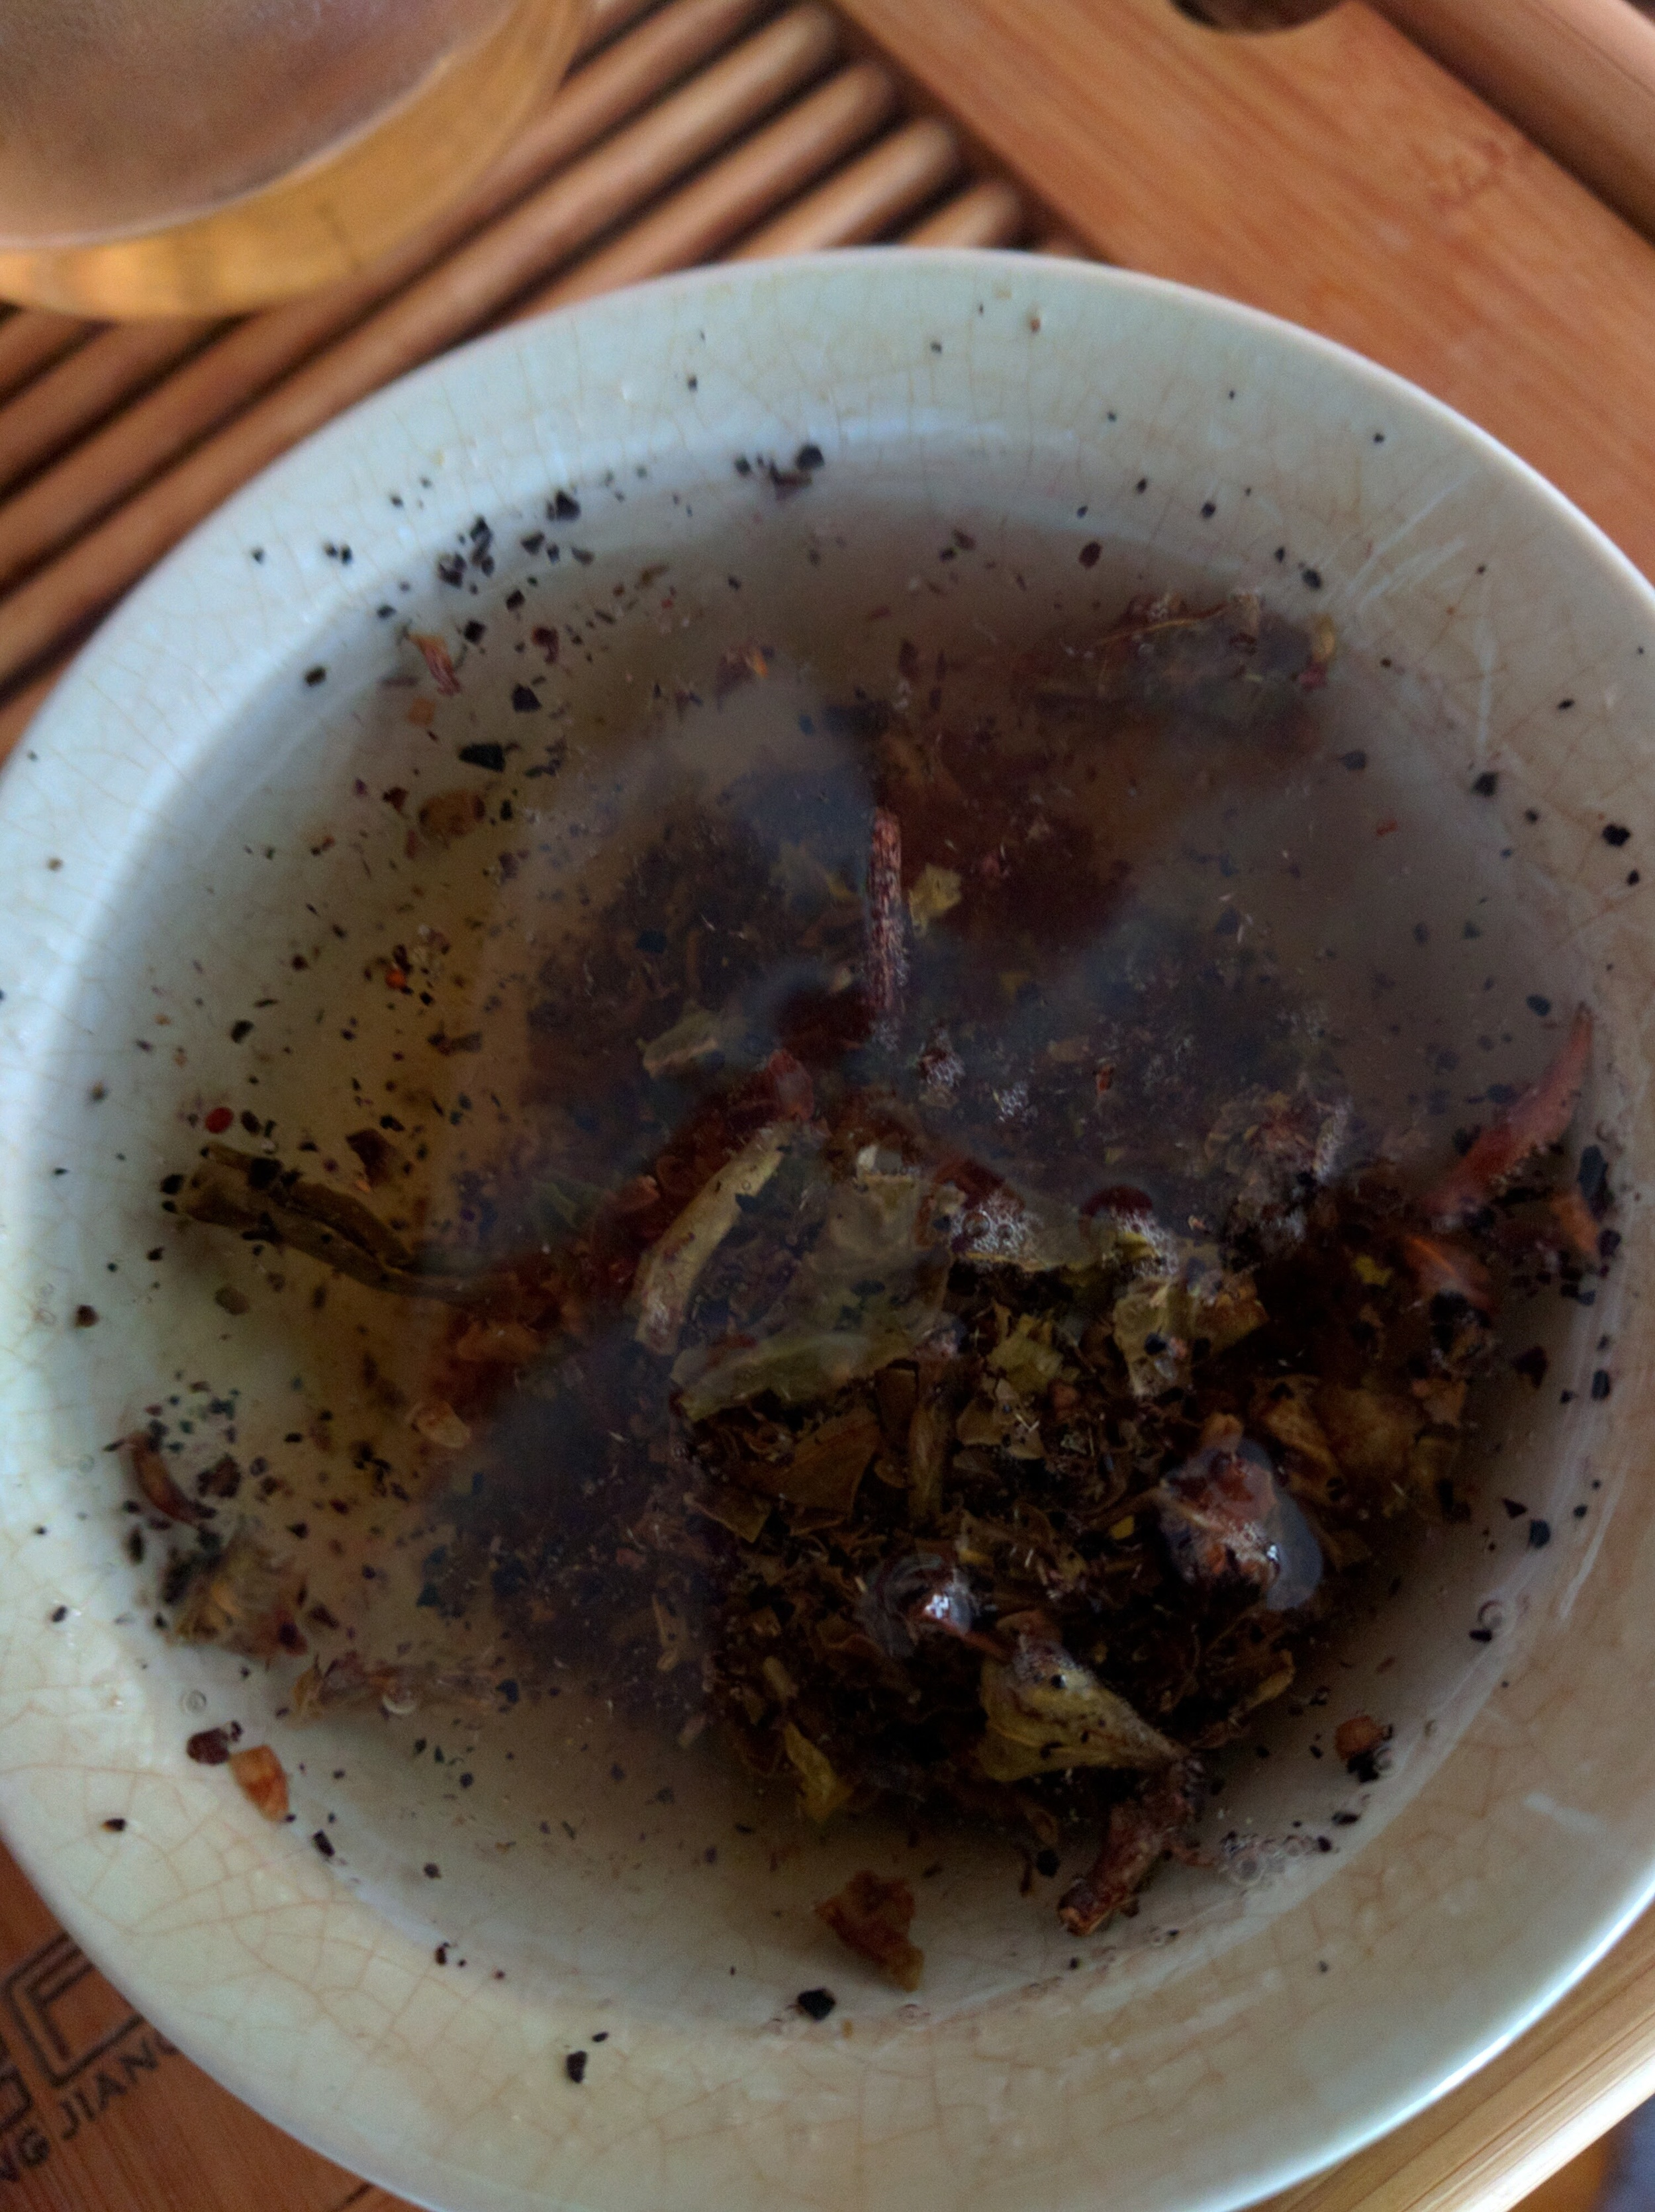 This tea has a lot of broken bits that even through a wash and several infusions are still present.